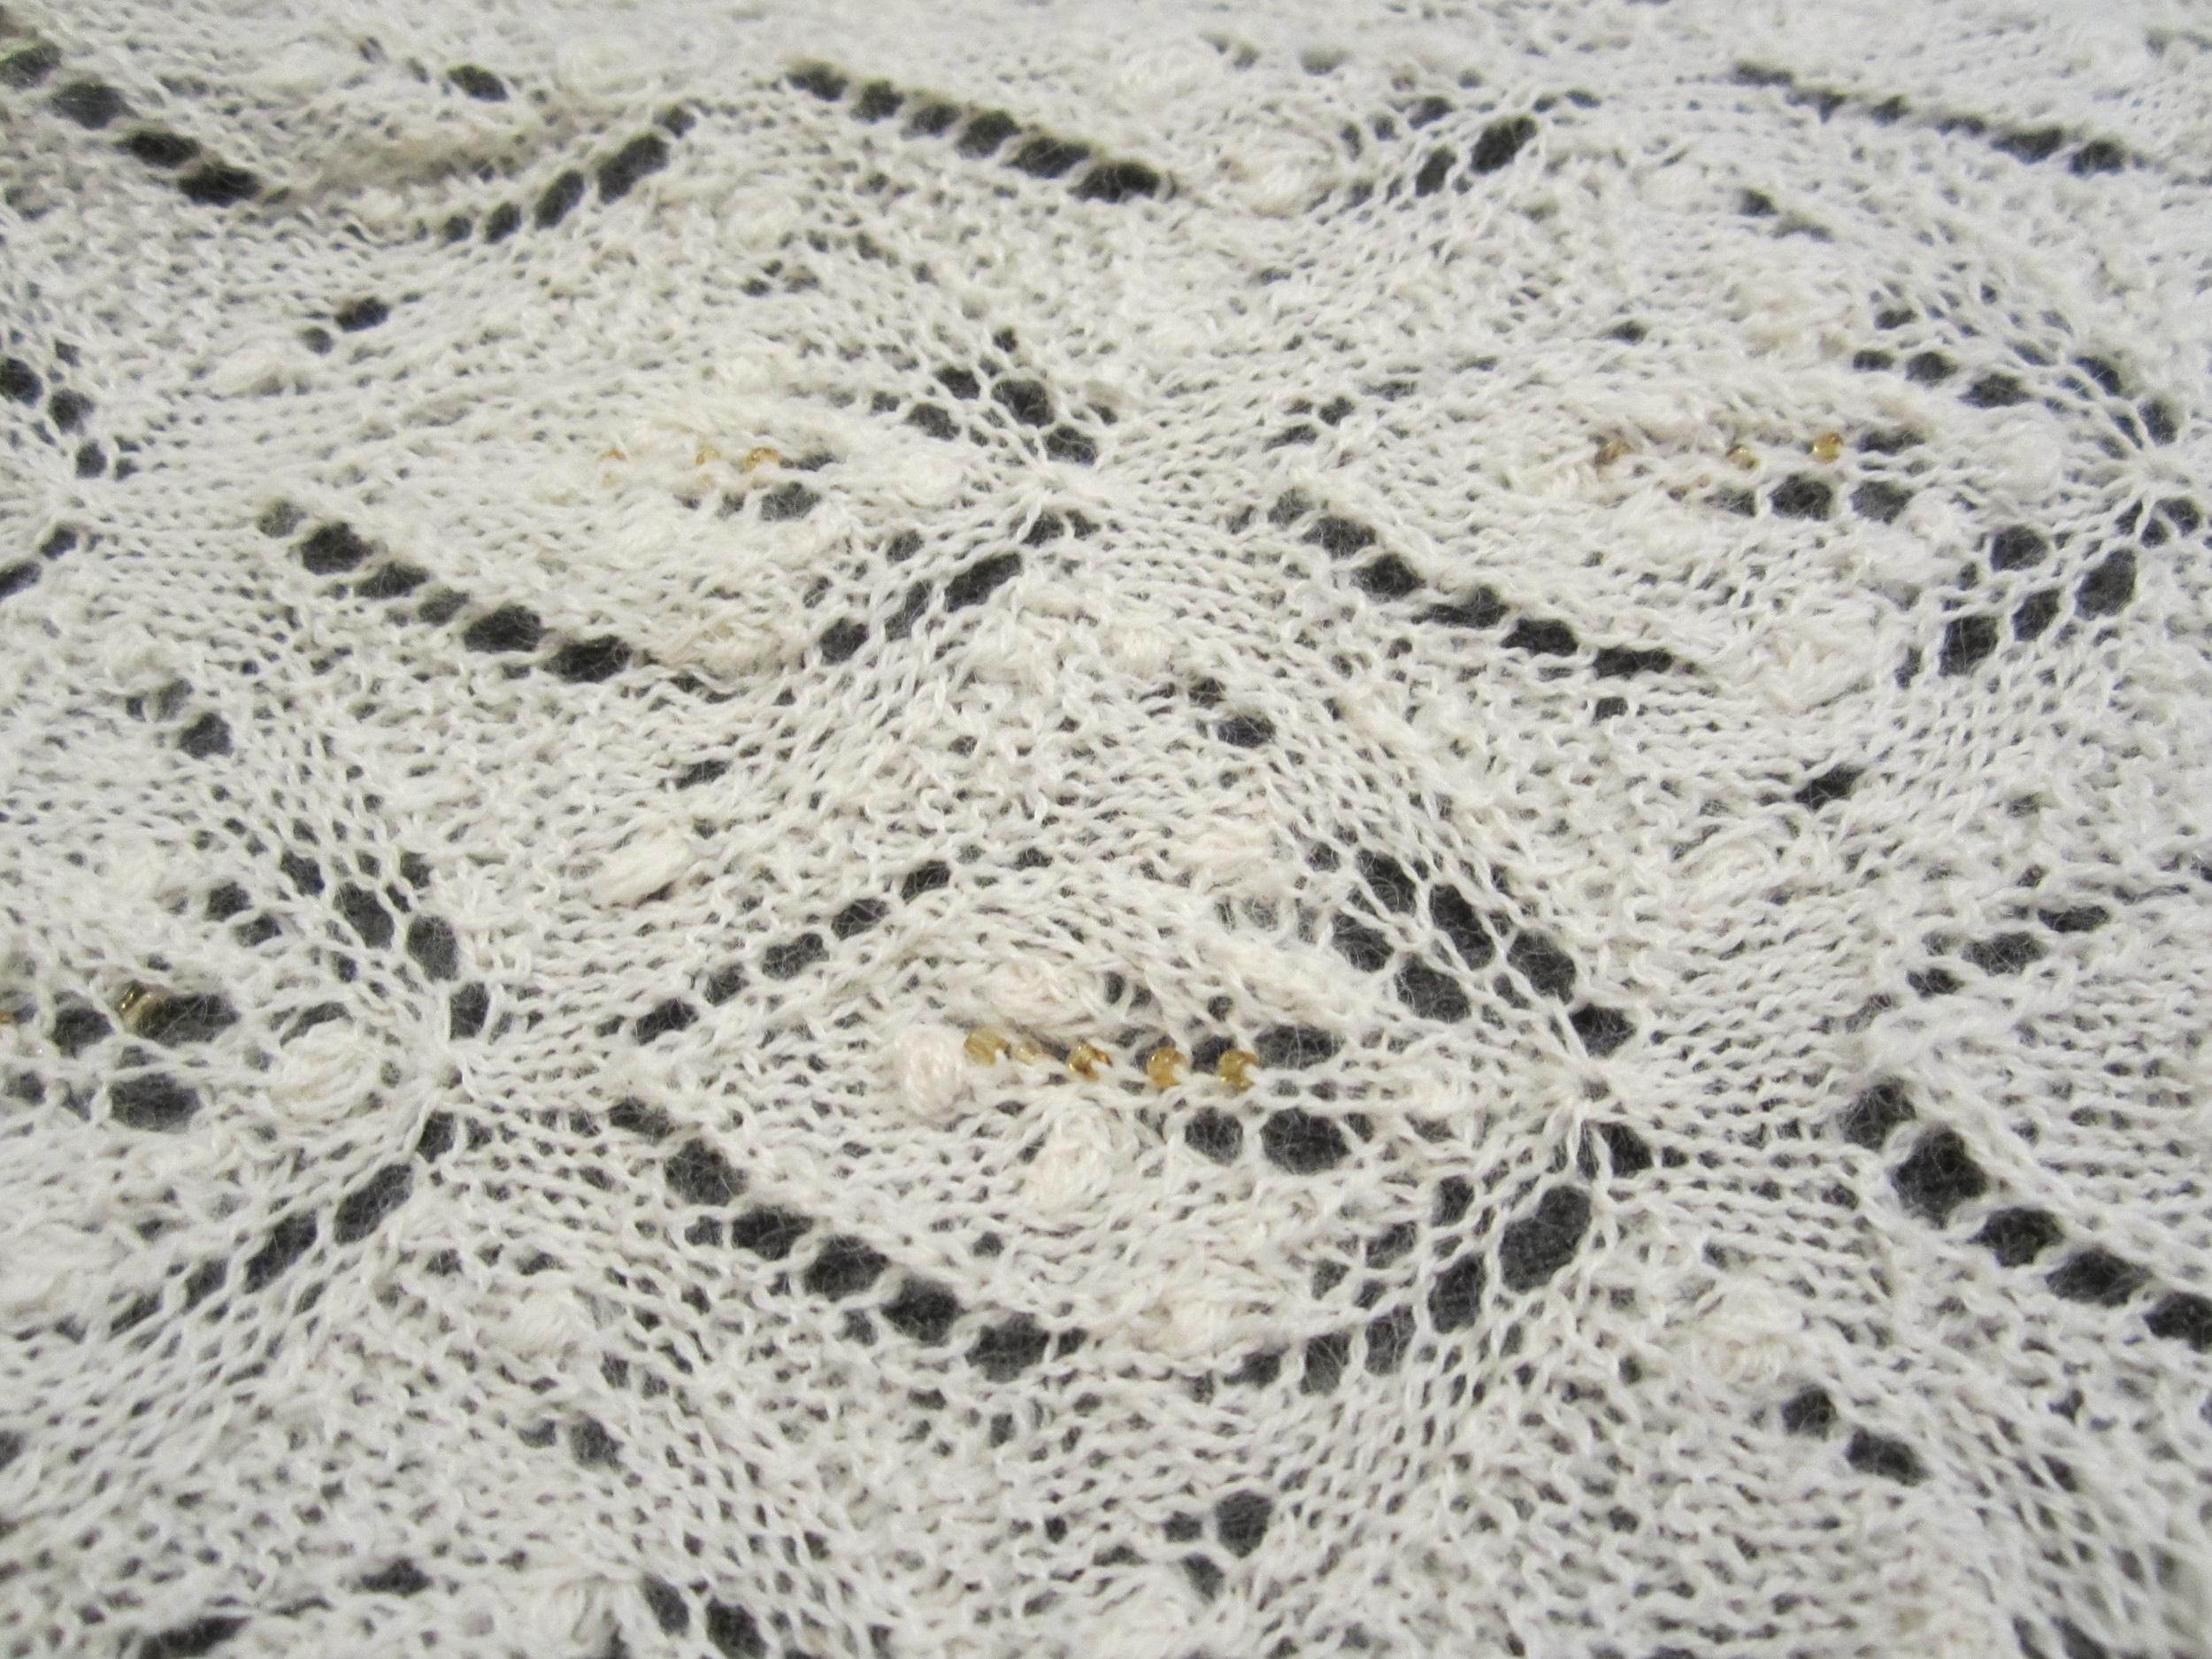 Traditional Estonian lace shawl pattern updated to incorporate gold glass beads down the center of each leaf motif.